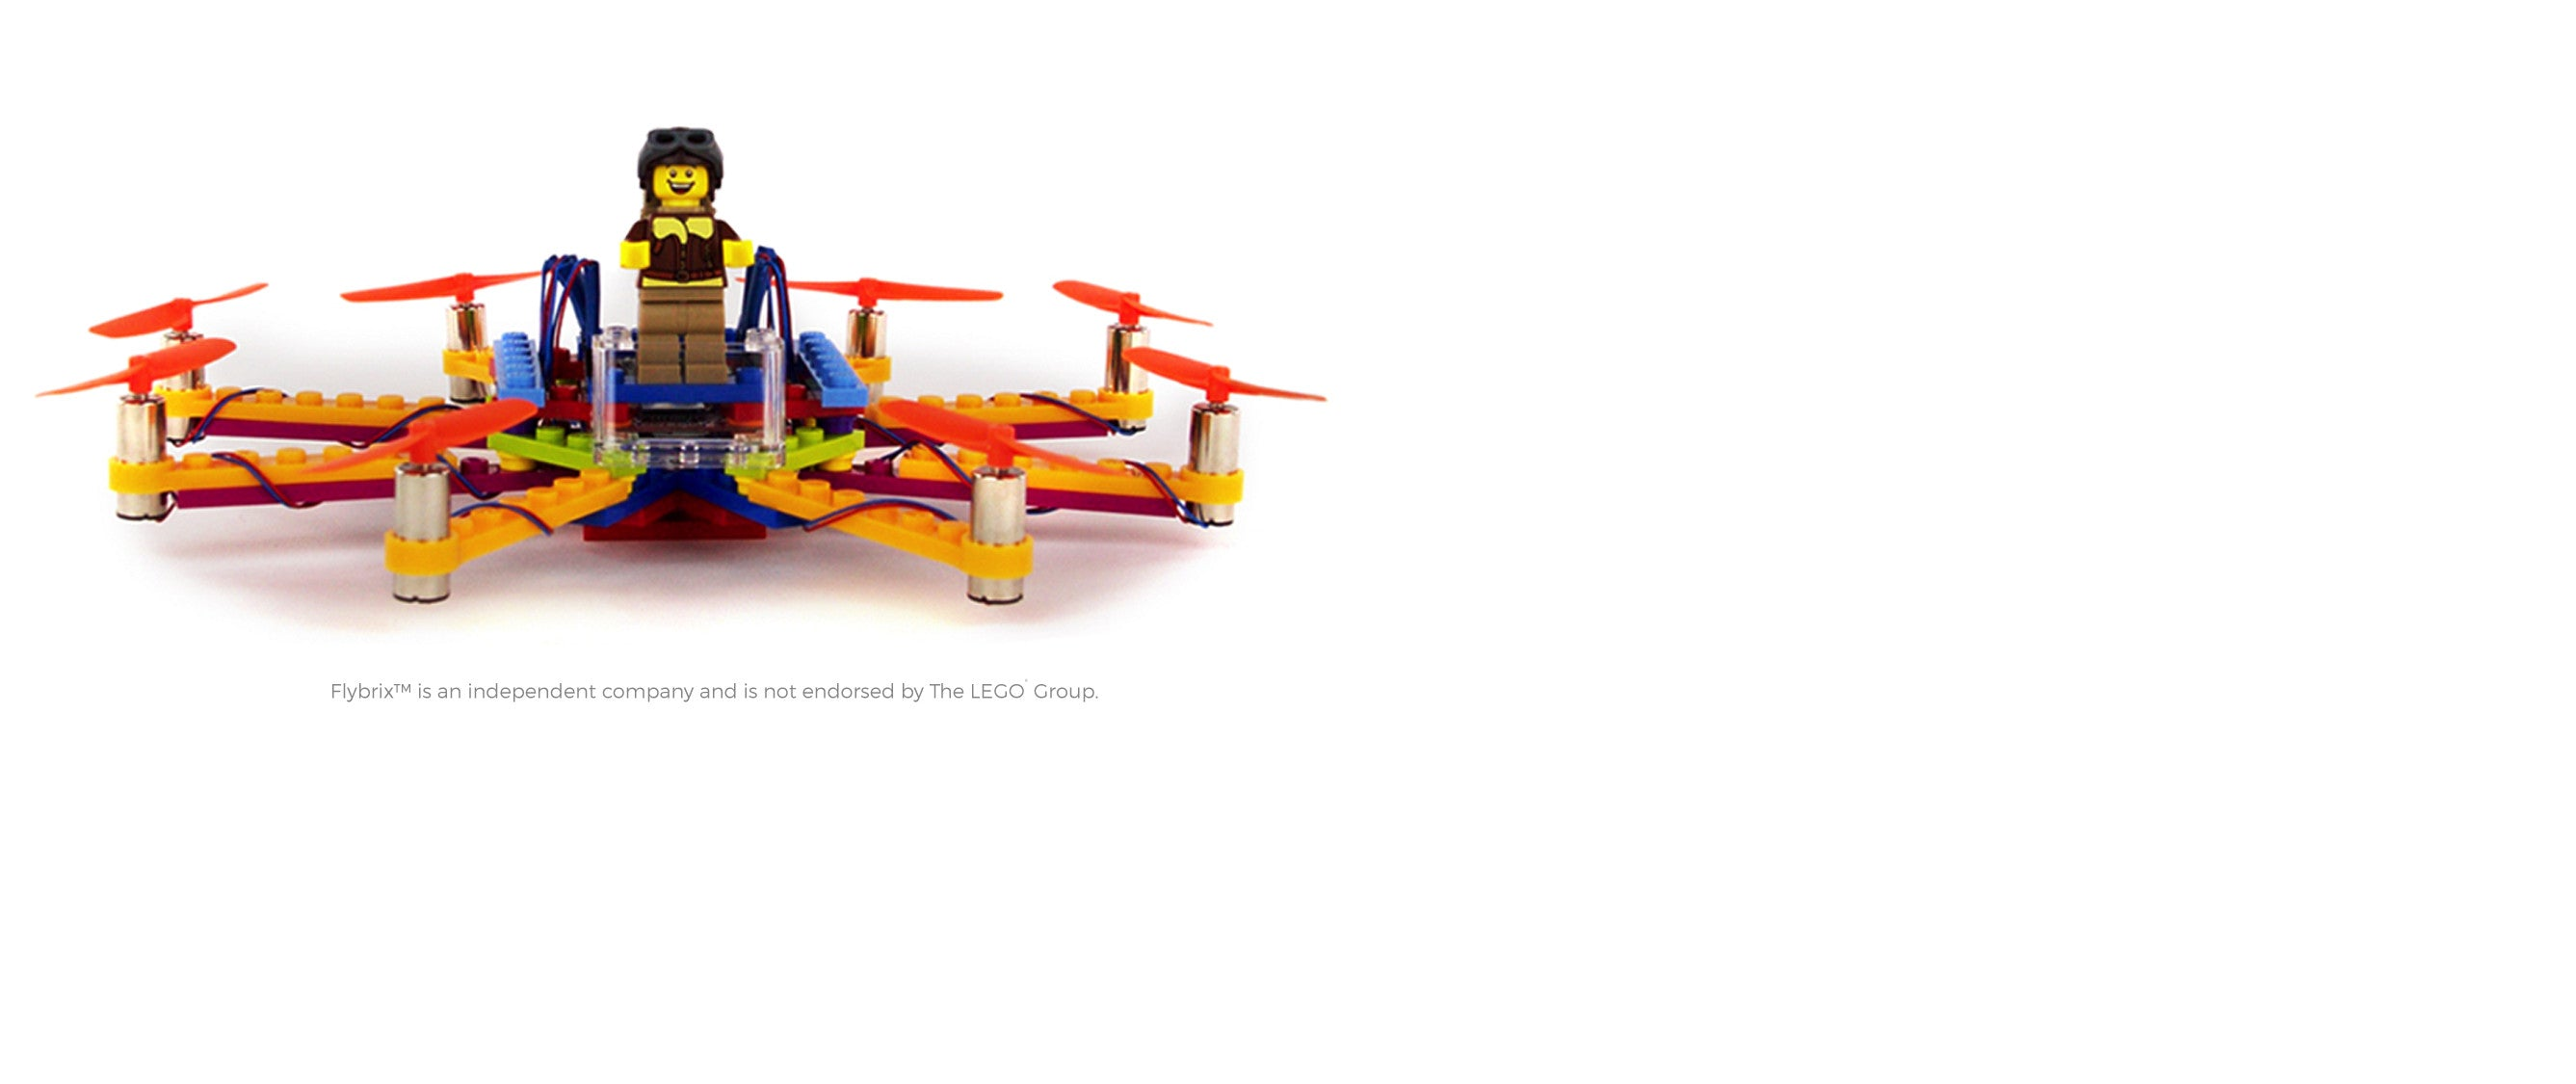 Build your own drones using LEGO® bricks